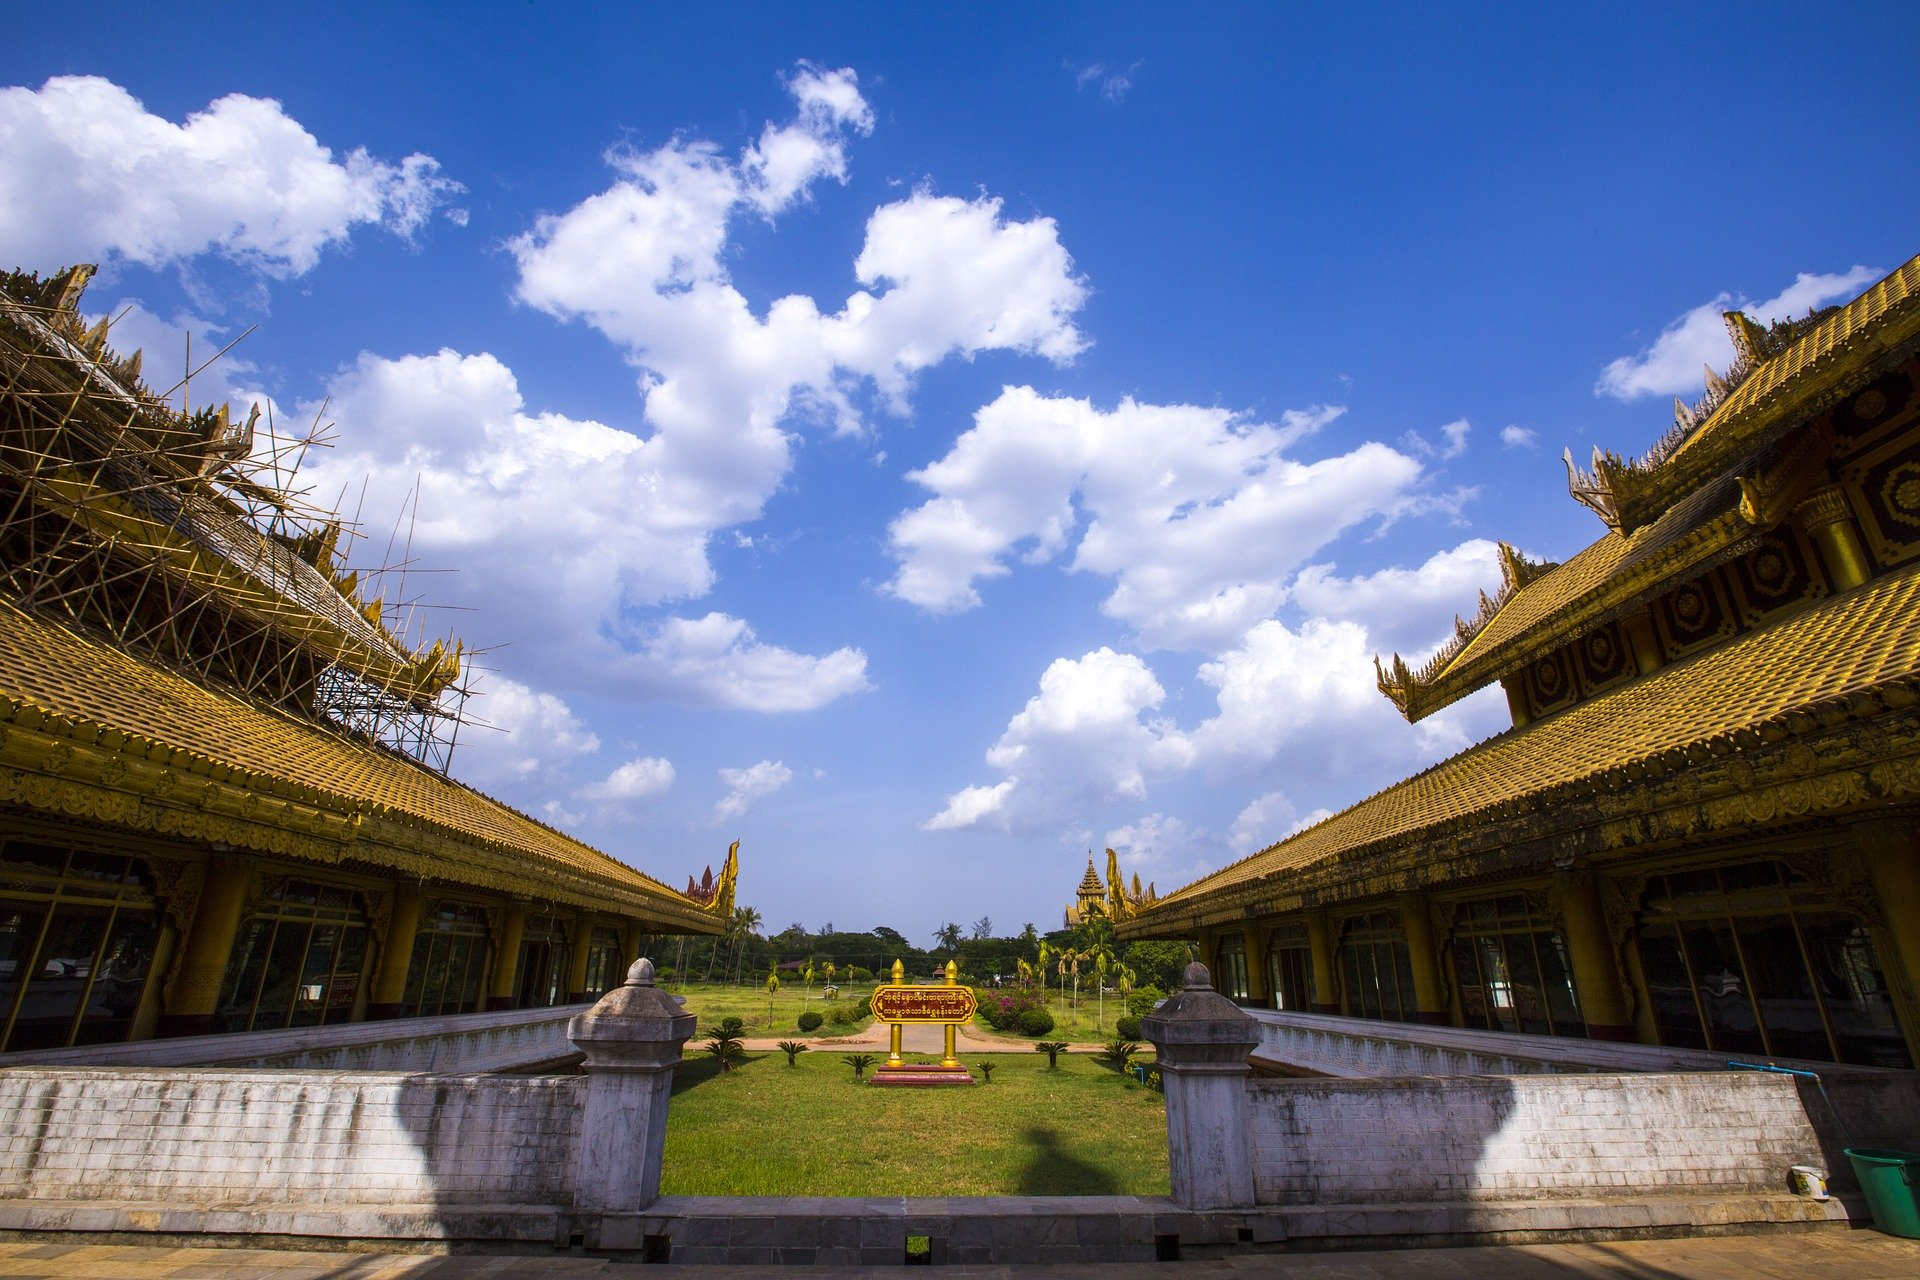 Mandalay Archaeological Zone